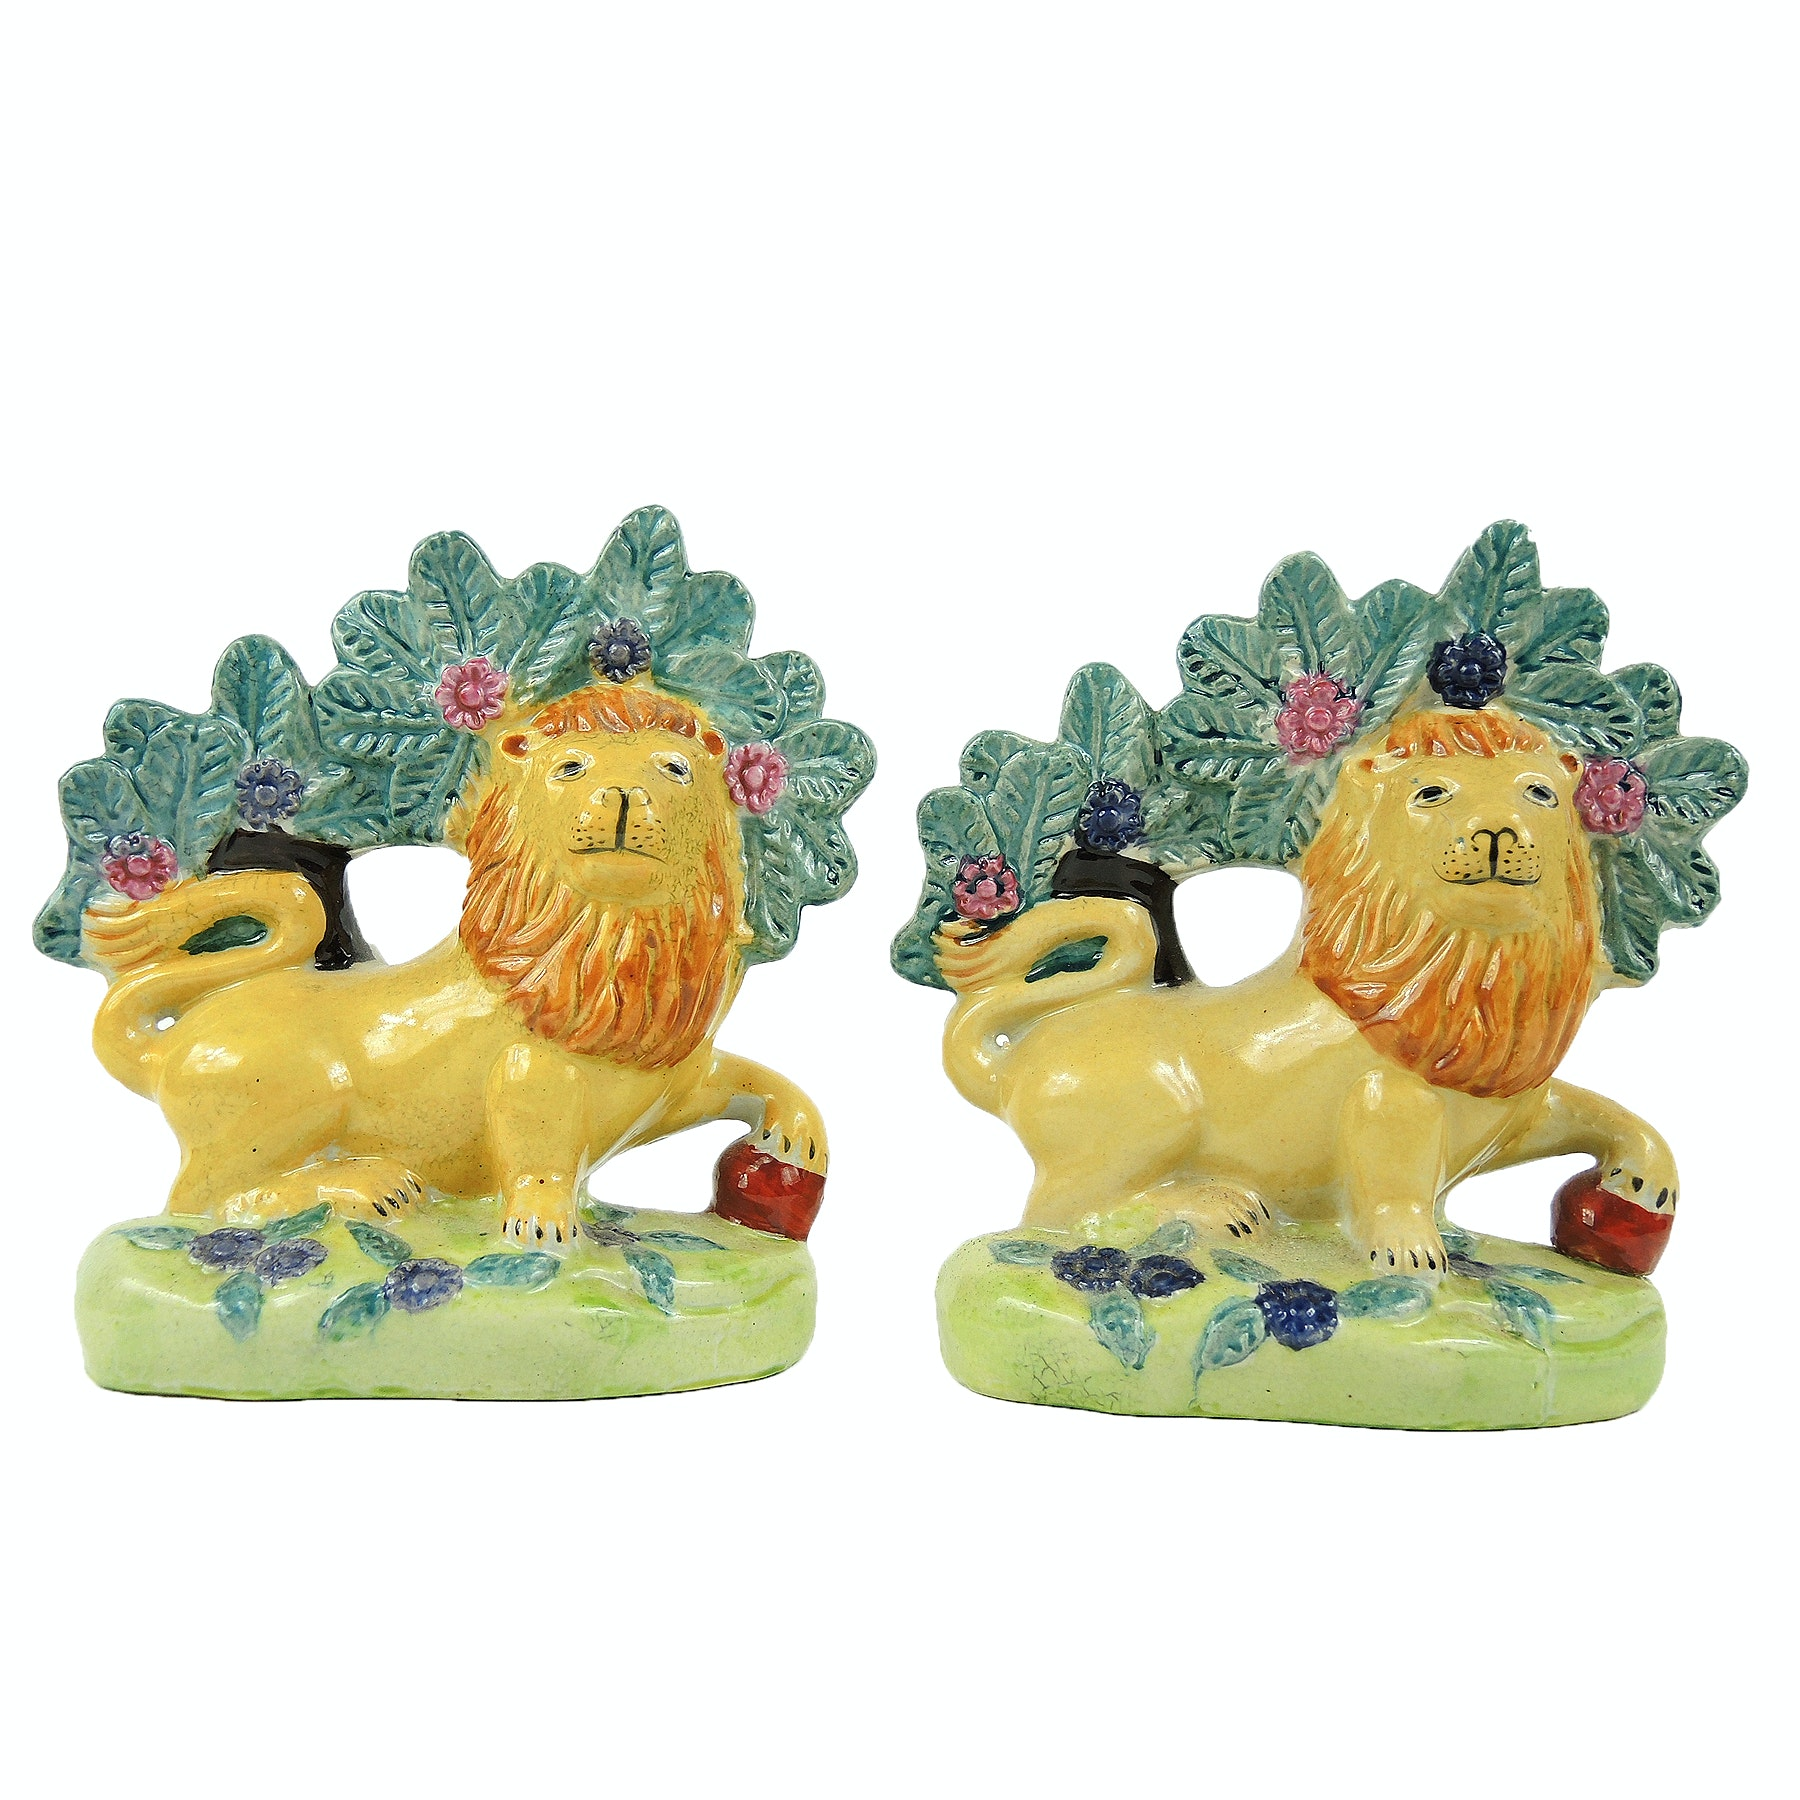 Staffordshire Pottery Figures of Lions, 20th Century